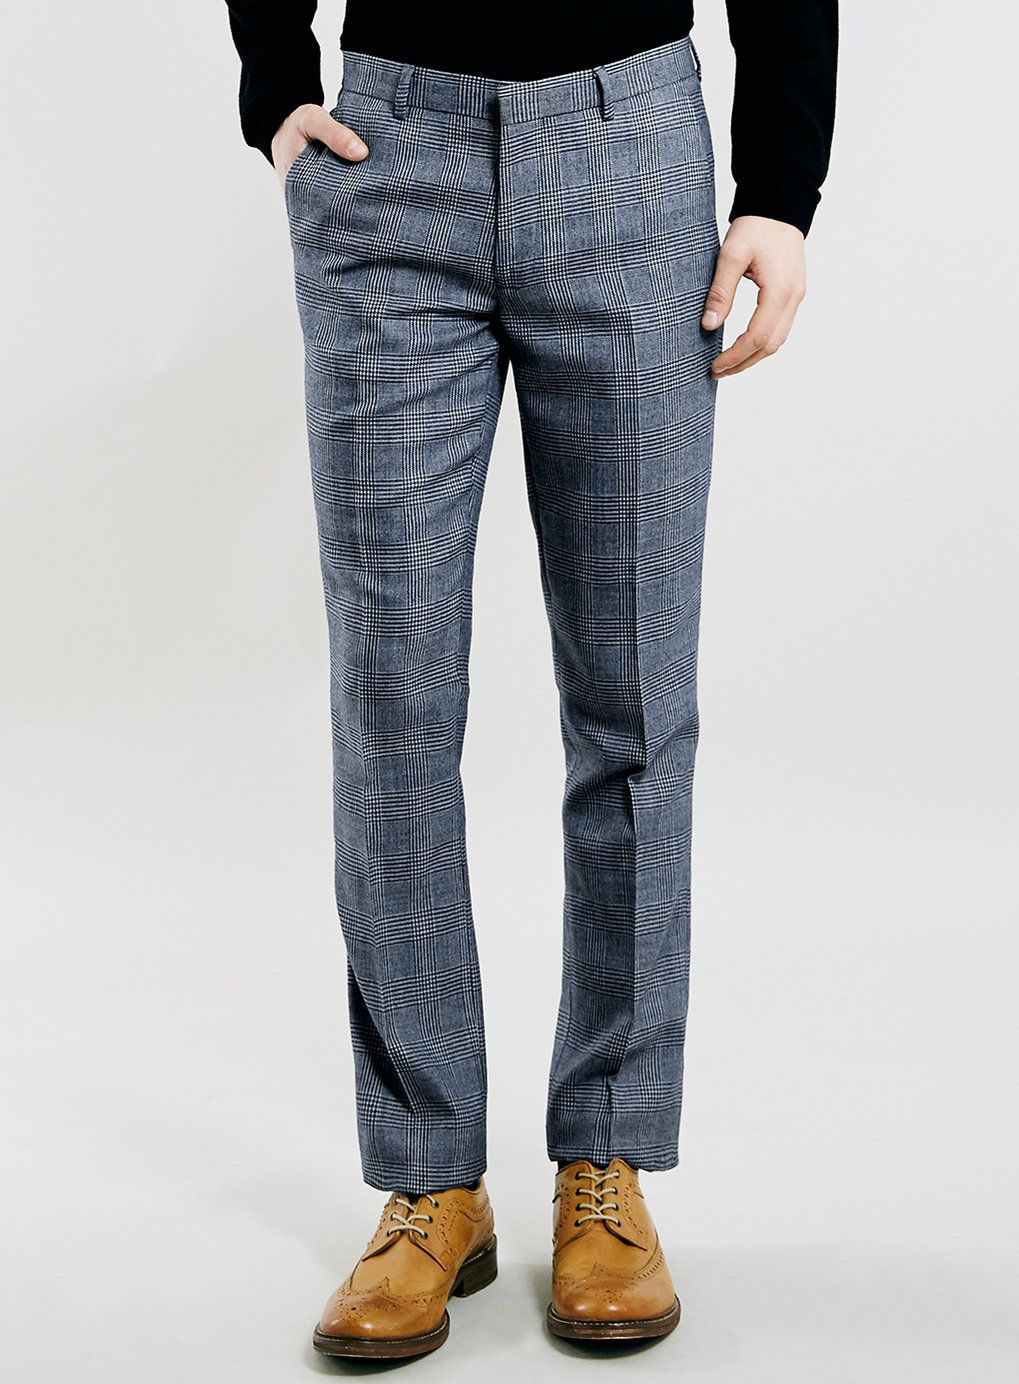 711b8cd1b4797e BLUE PRINCE OF WALES CHECK SKINNY FIT SUIT TROUSERS - Topman ...